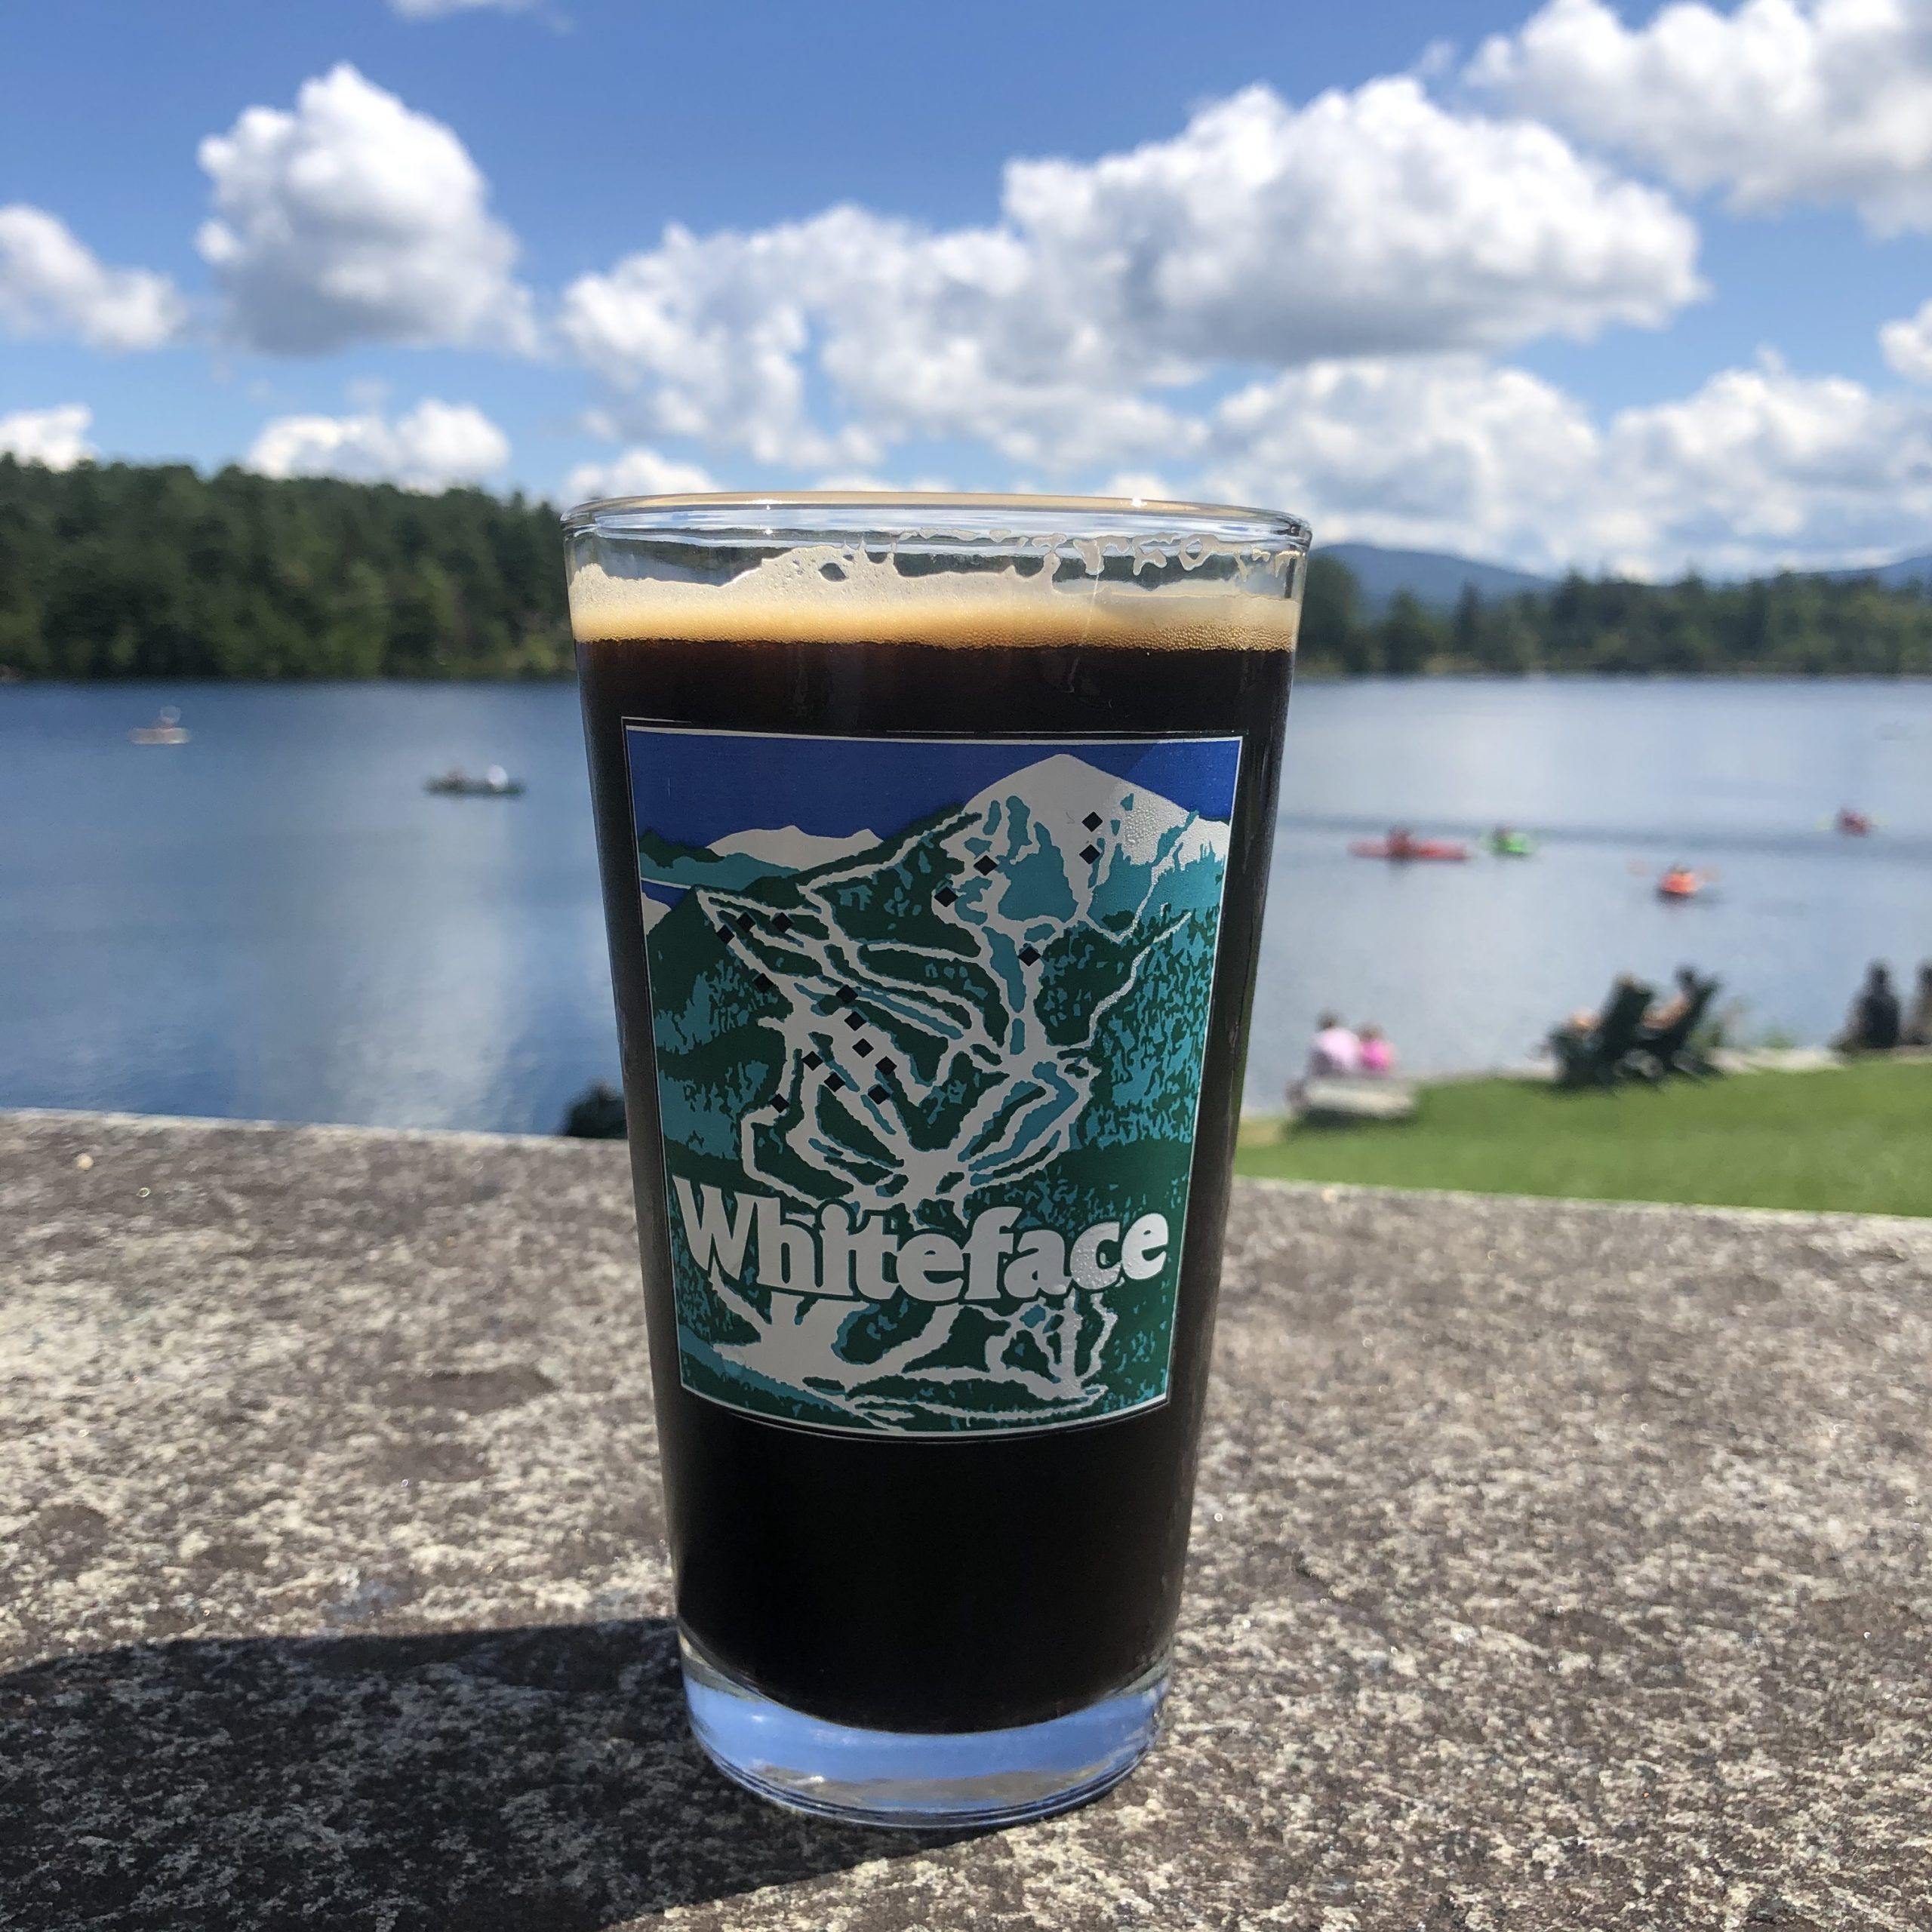 whiteface pint glass